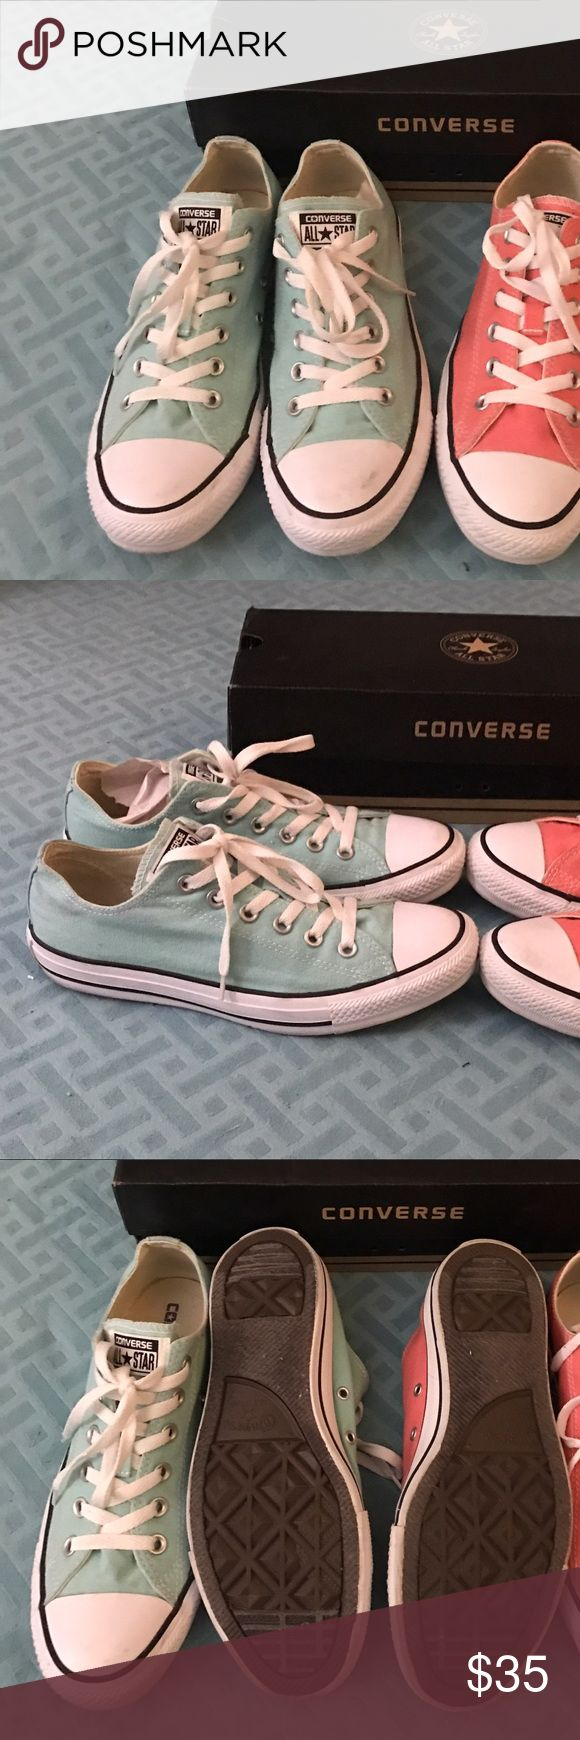 1 pair of mint converse all stars only EUC Mint canvas chucks go with so much! Worn 1x the coral are sold Converse Shoes Sneakers